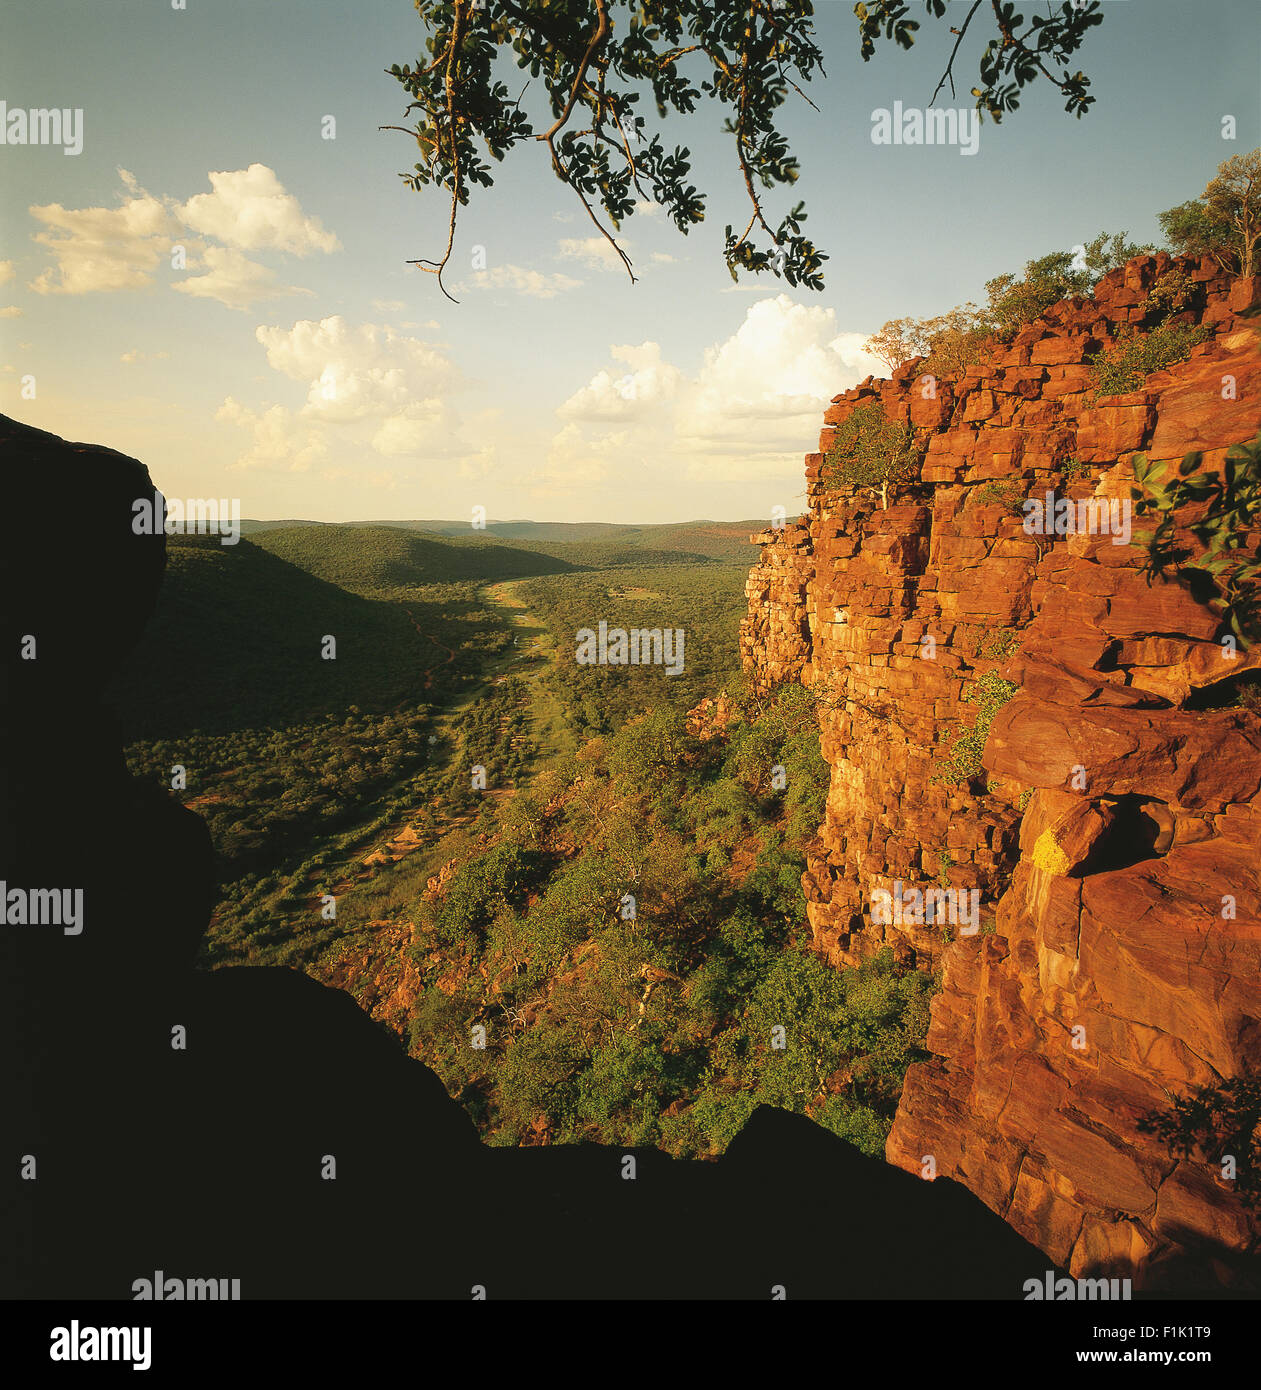 Rocky outcrop overlooking Mogol River in valley, Limpopo, South Africa, Africa - Stock Image